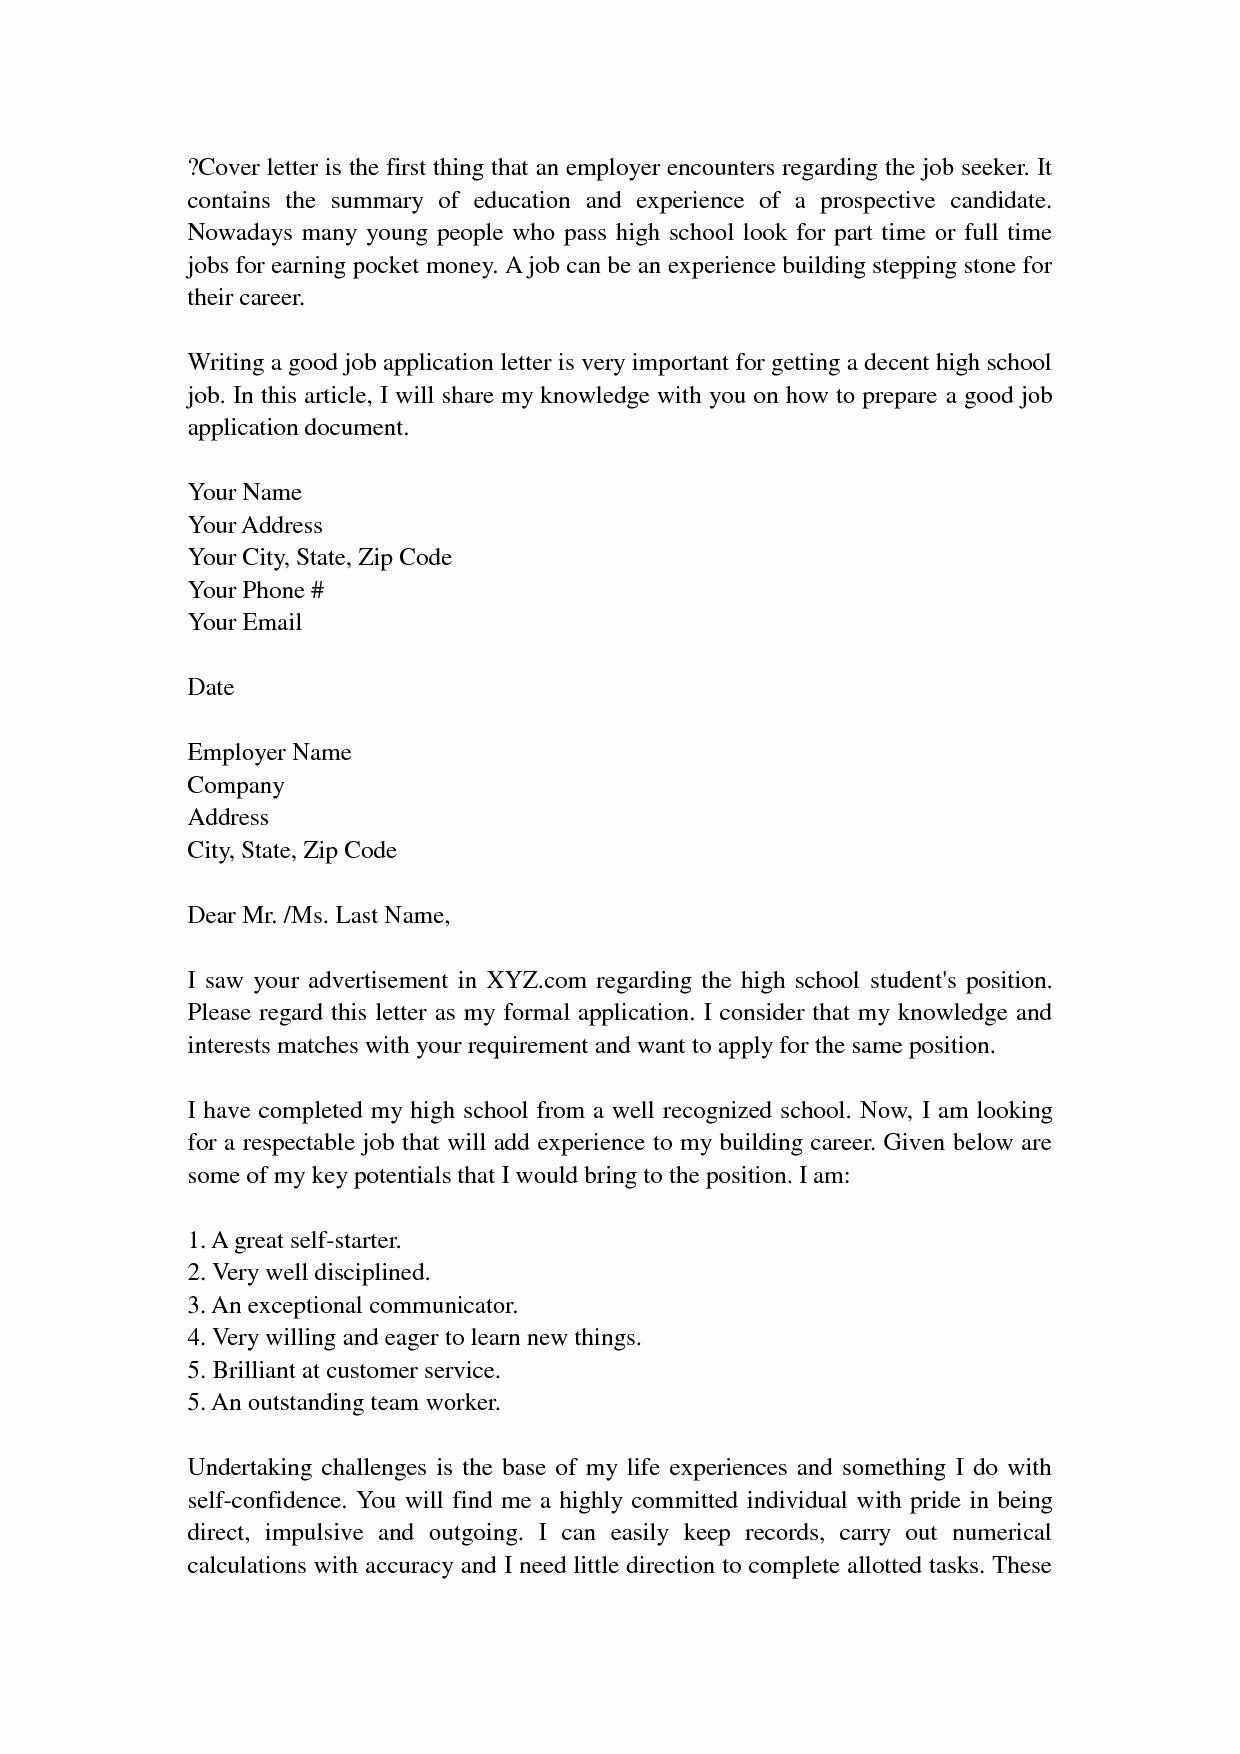 Formal Cover Letter High School Application Letter Image Collections  News To Go 2 .